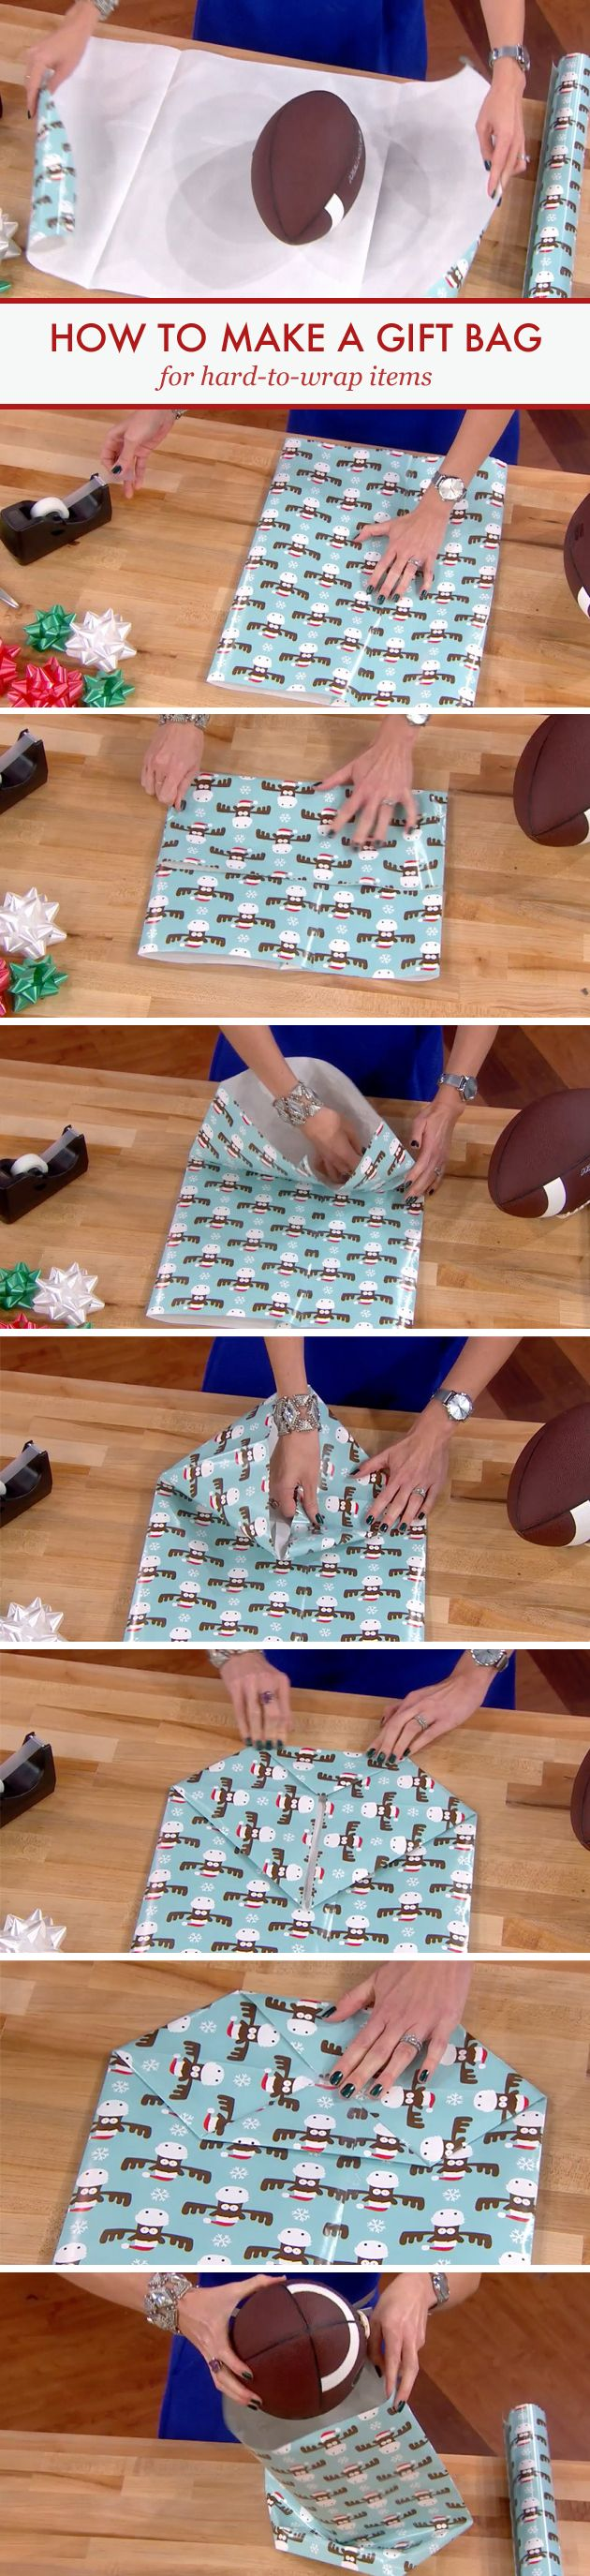 How to make DIY gift bags for hard-to-wrap items.